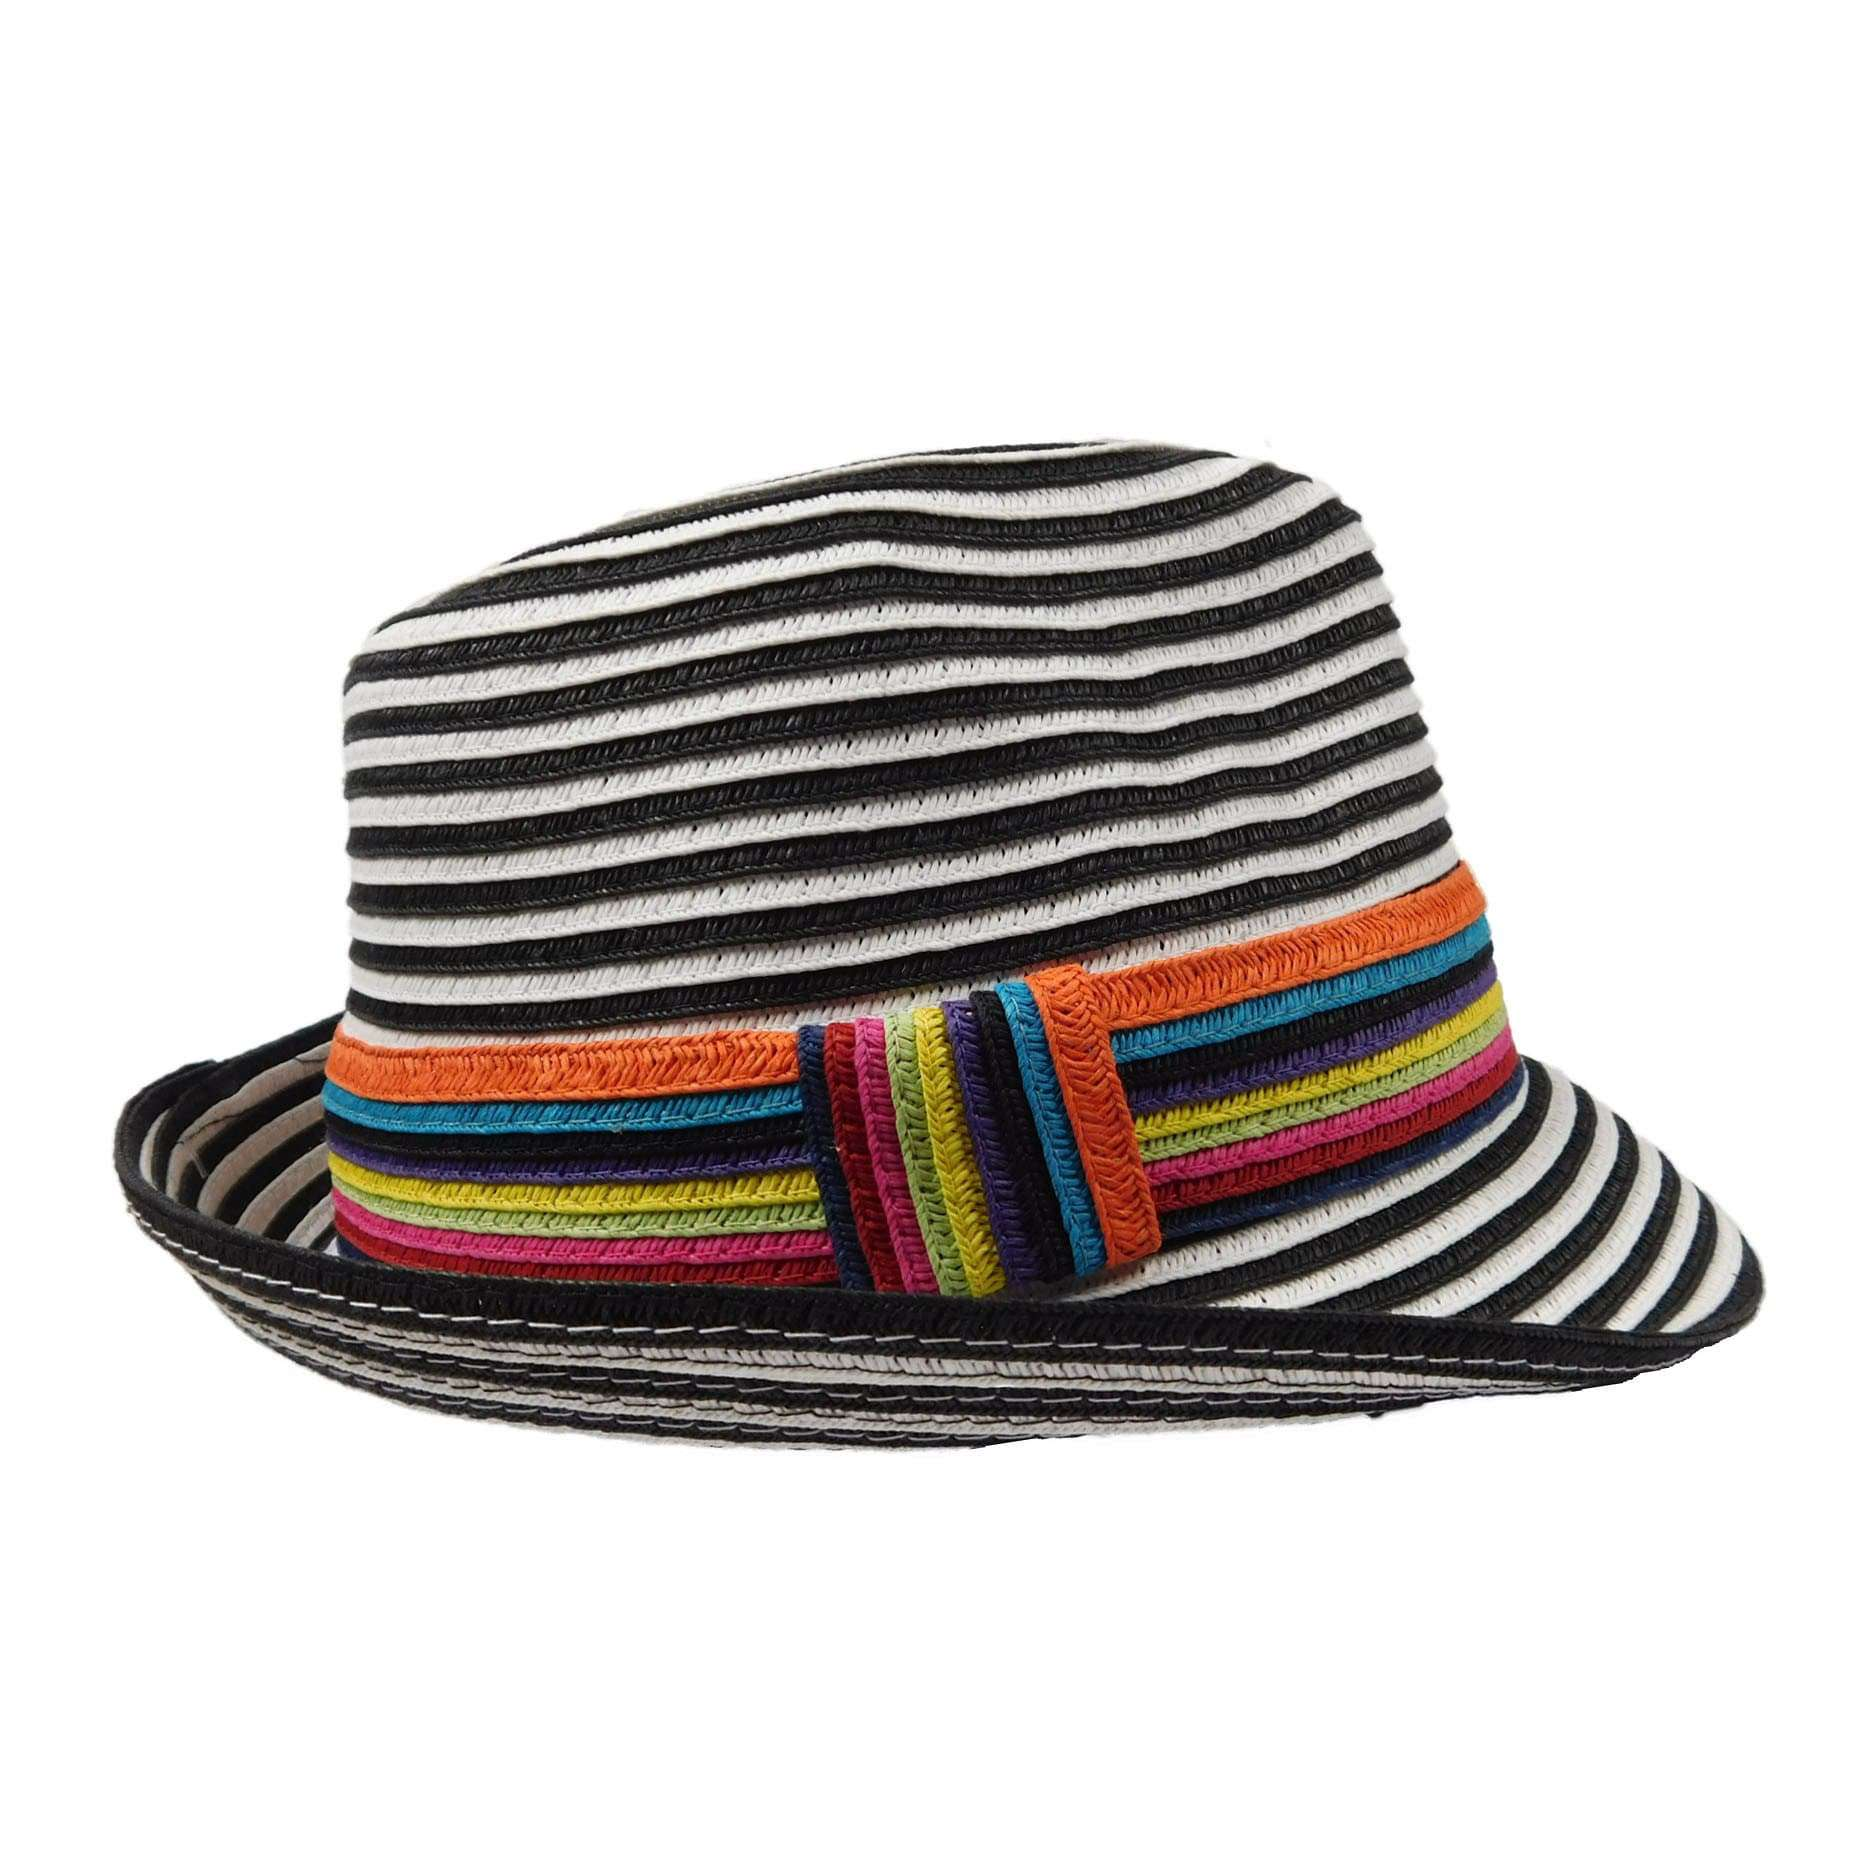 Black and White Striped Summer Fedora by JSA for Women - SetarTrading Hats